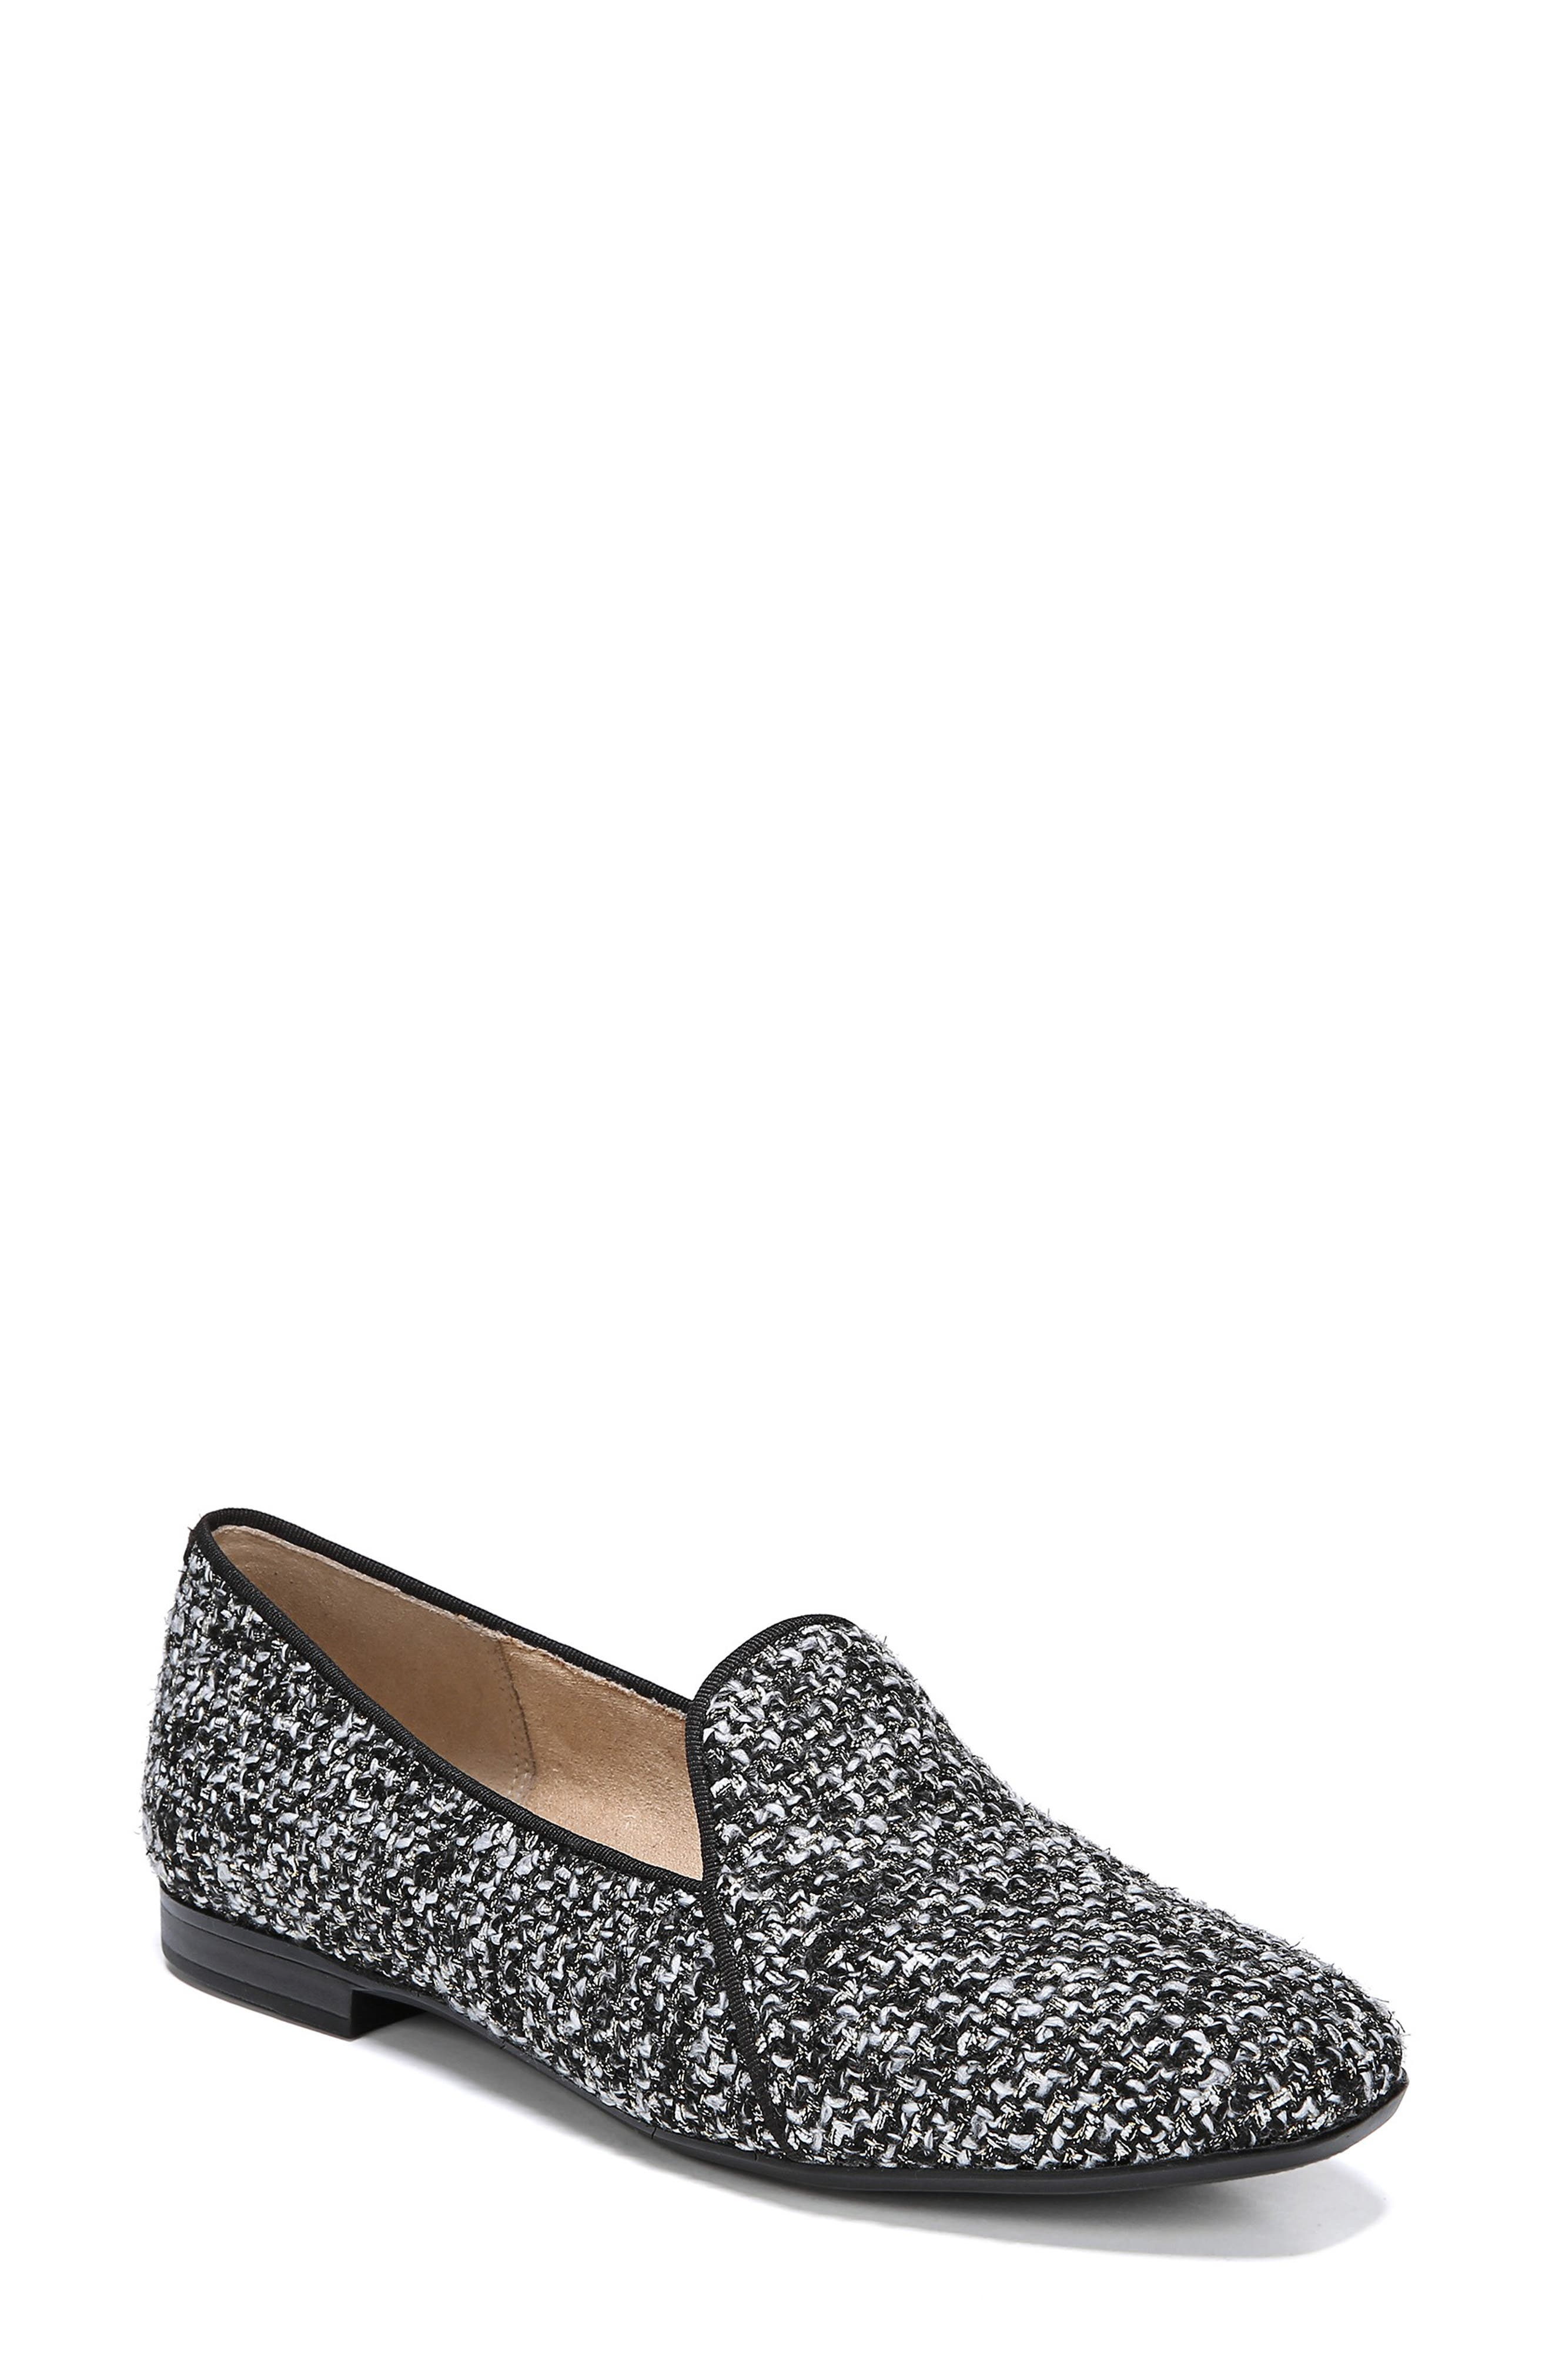 Emiline 2 Loafer,                             Main thumbnail 1, color,                             BLACK/ WHITE TWEED FABRIC